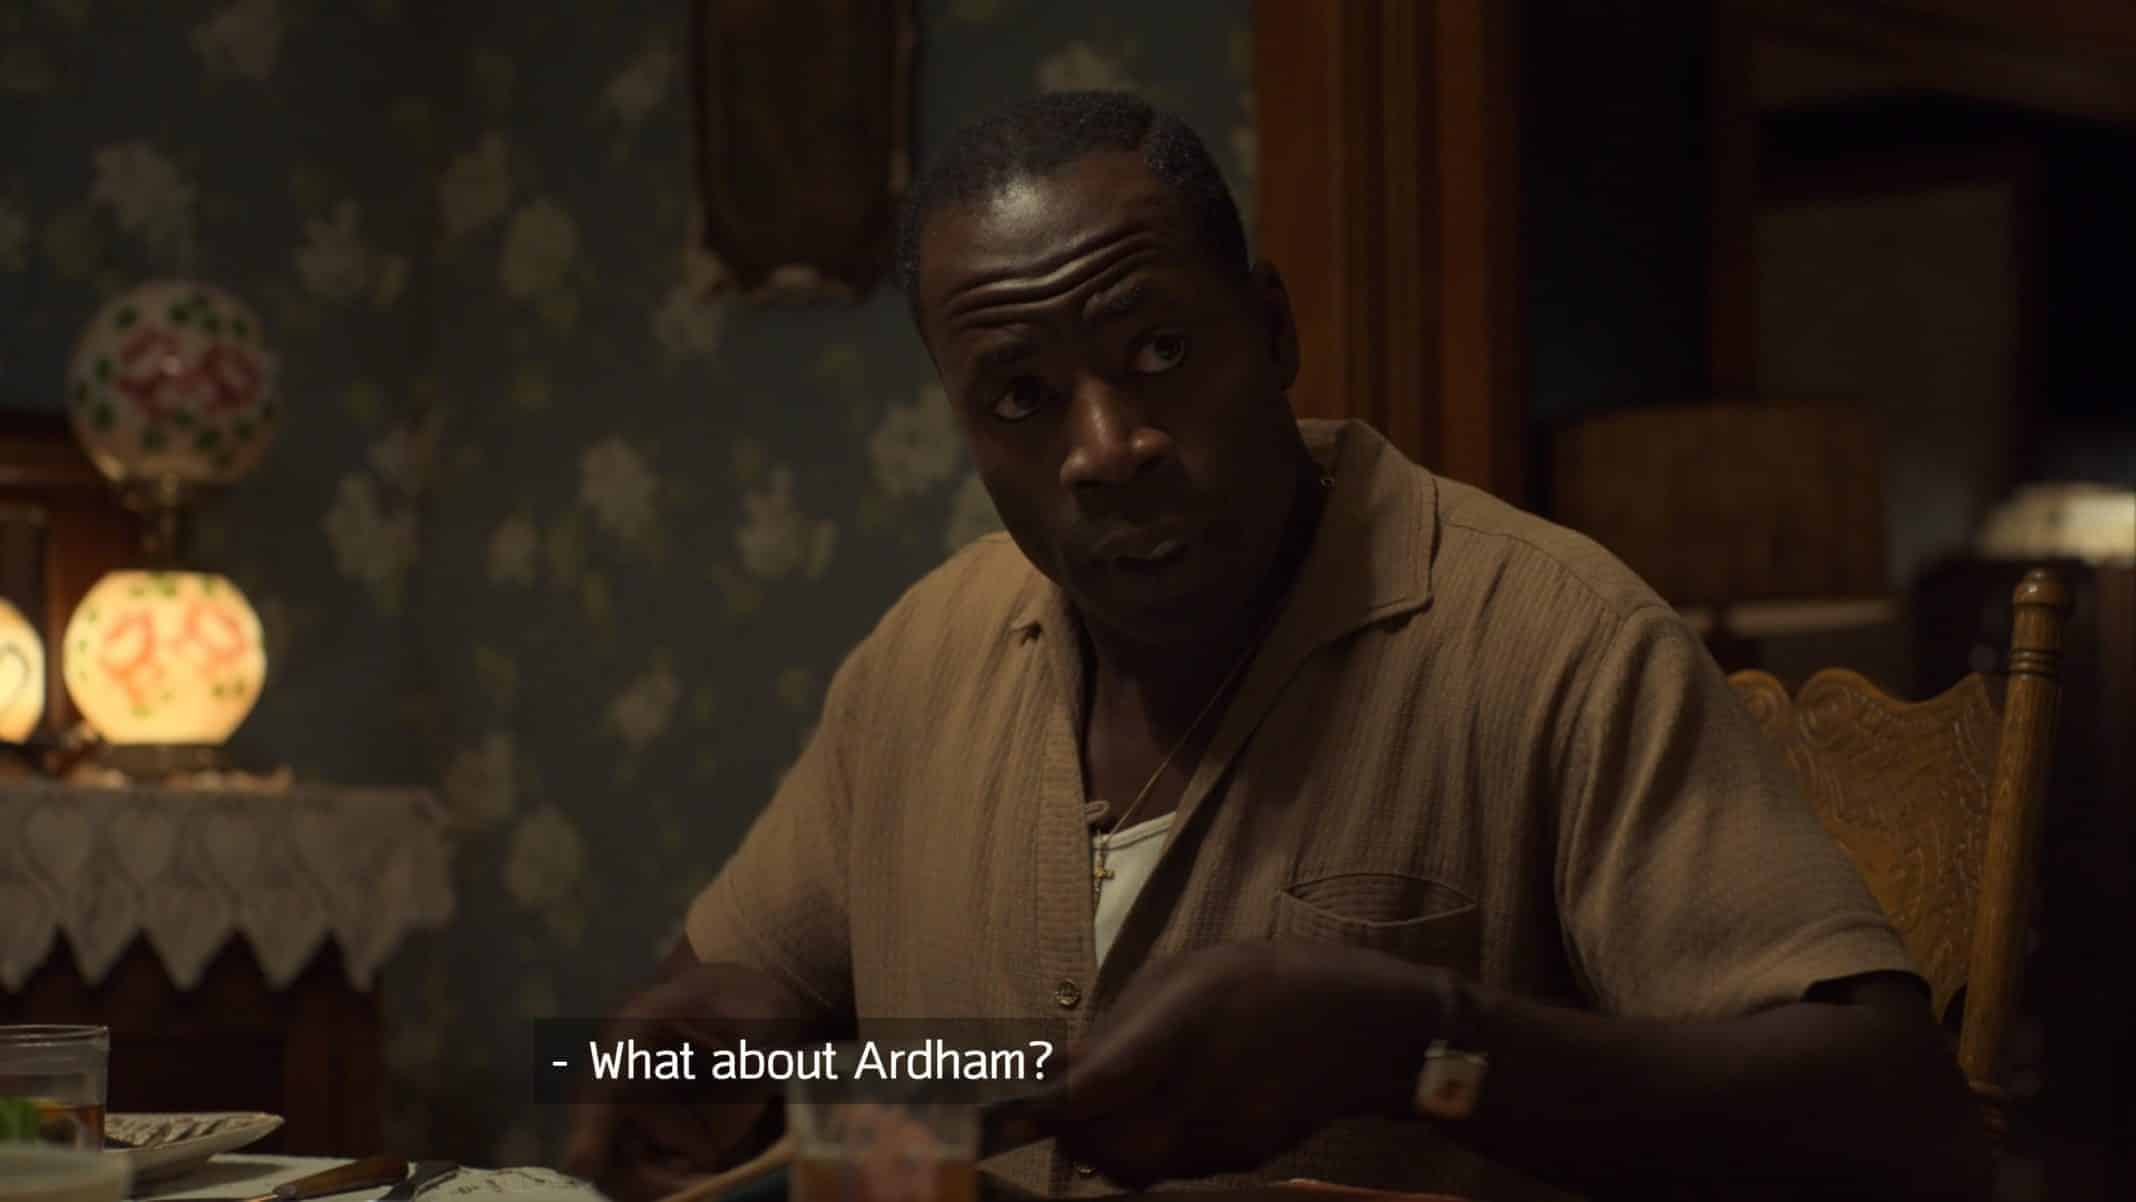 Marvin (Demetrius Grosse) asking about Ardham.